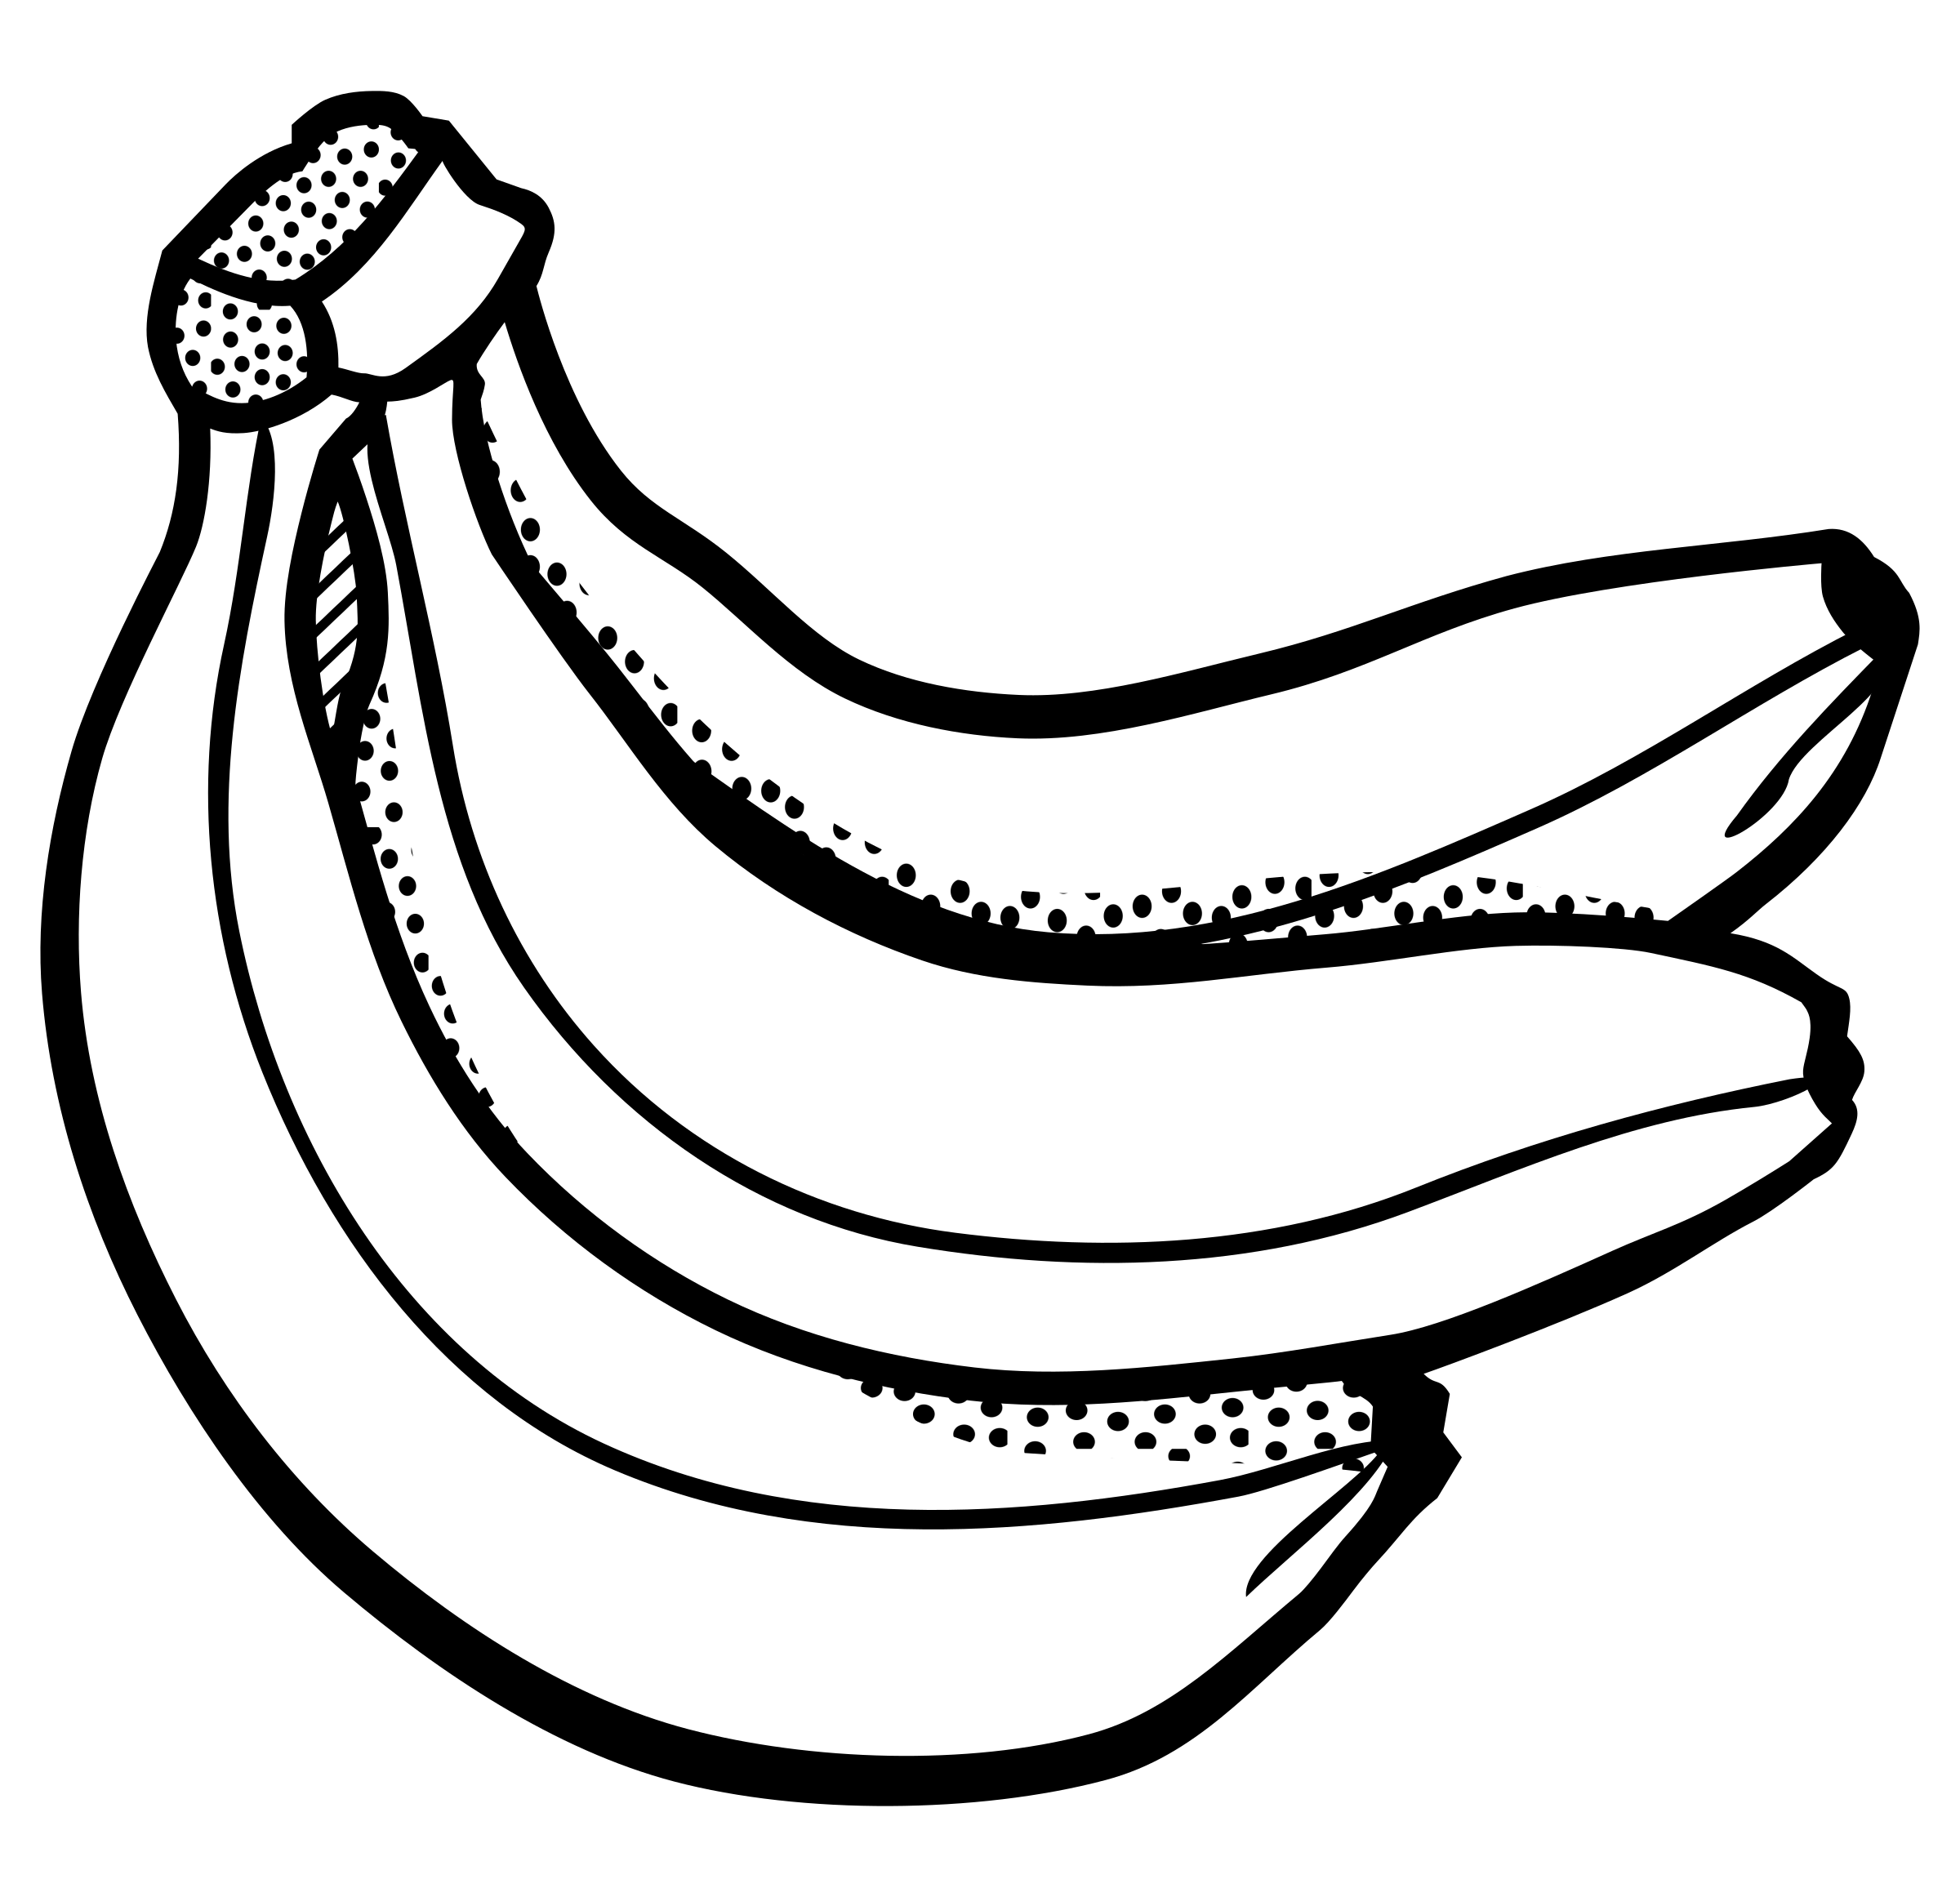 Banana black and white. Firewood clipart bunch